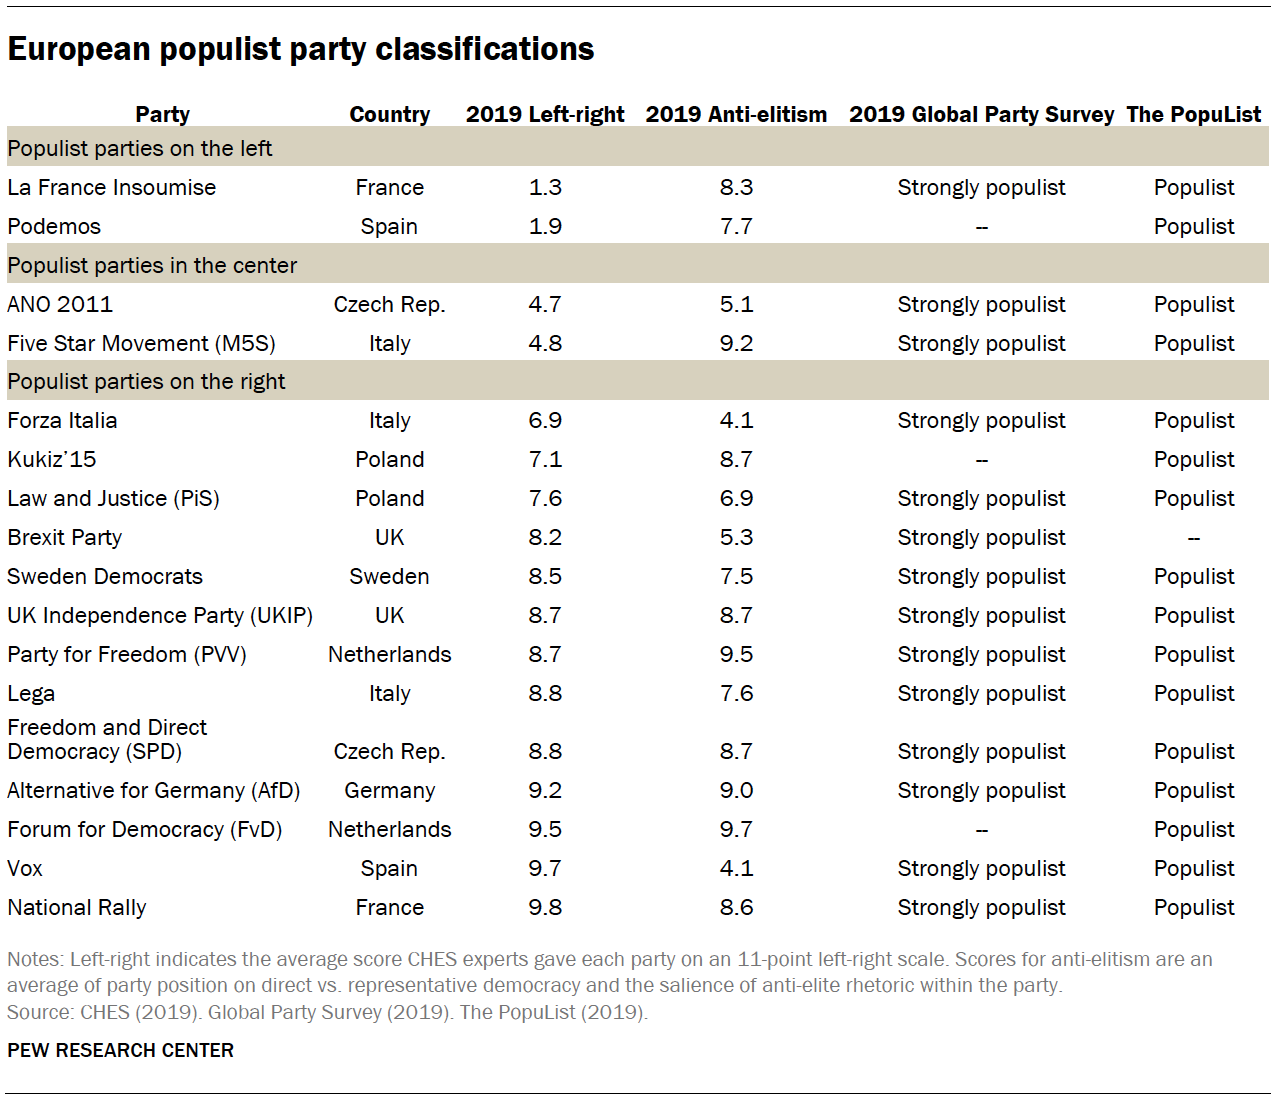 Chart shows European populist party classifications